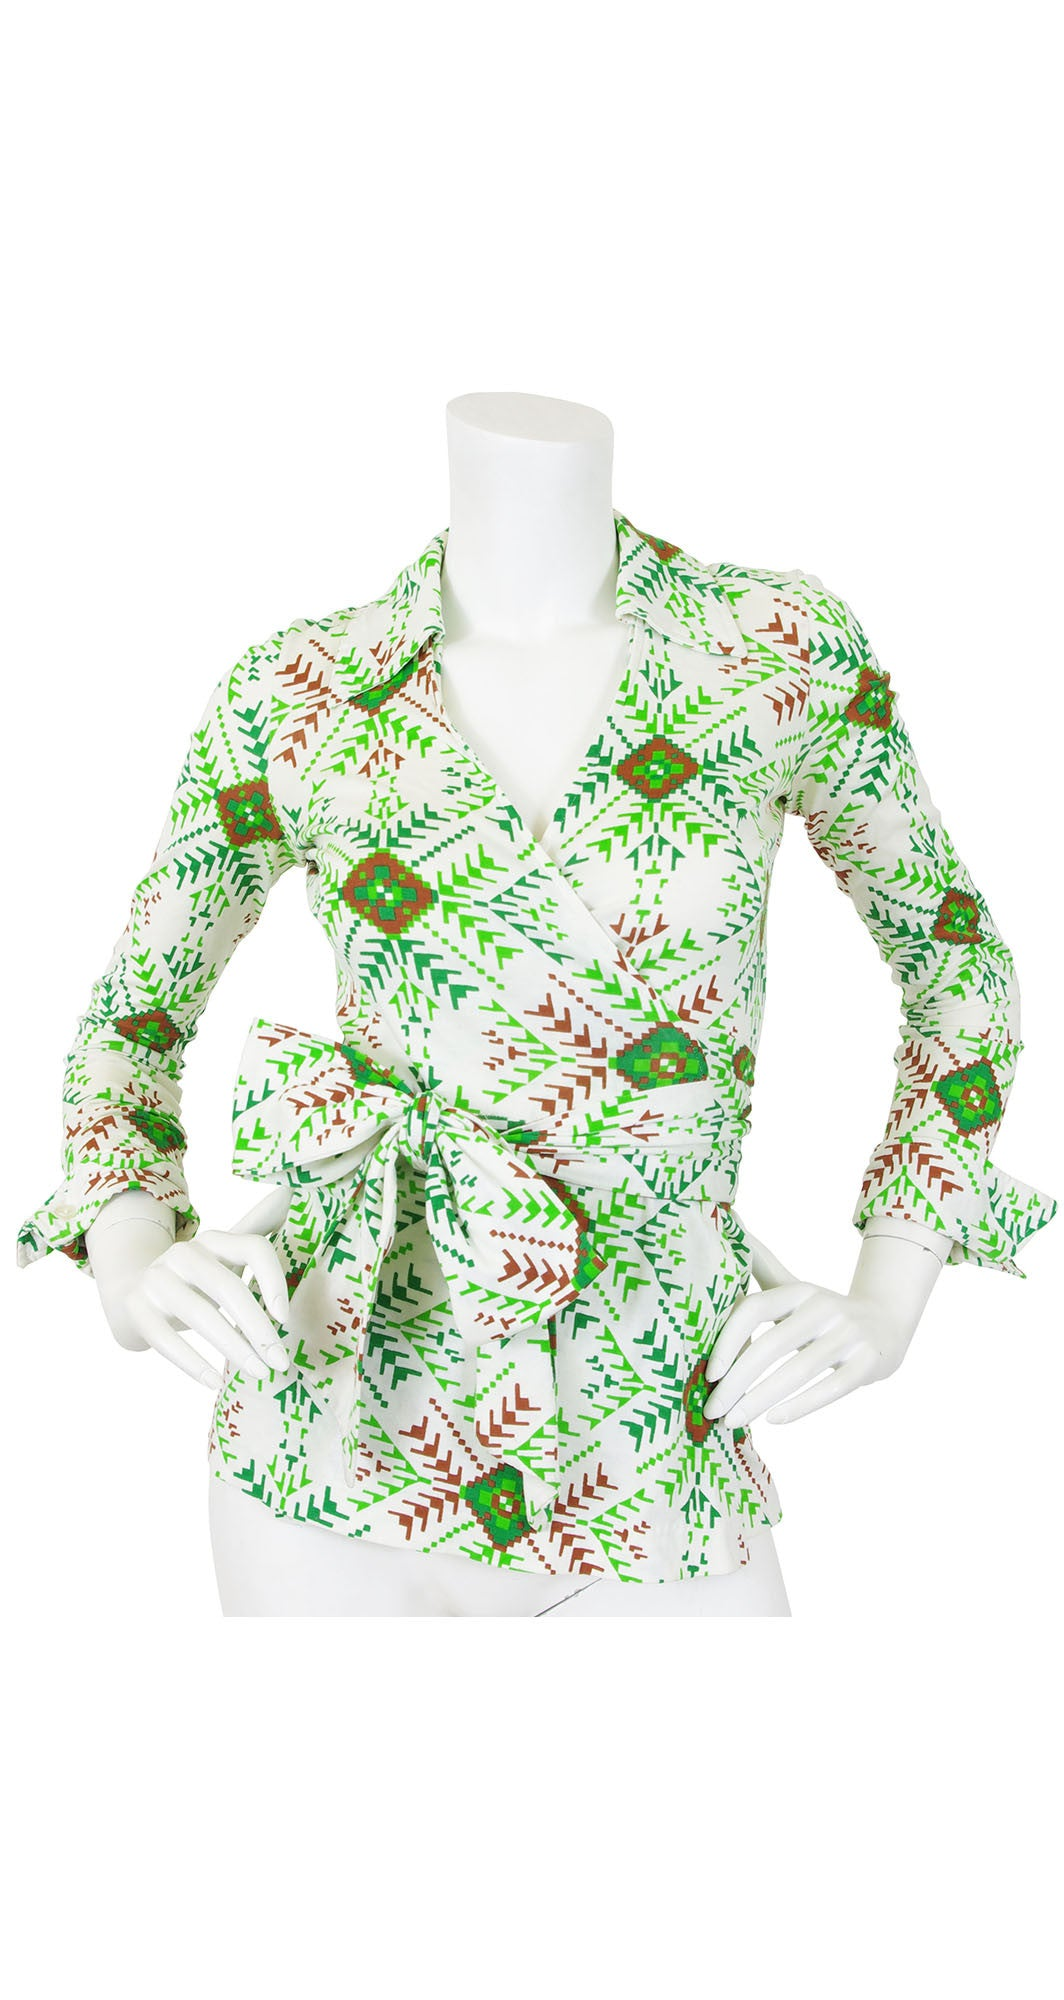 1970s Aztec Print Large Bow Wrap Top